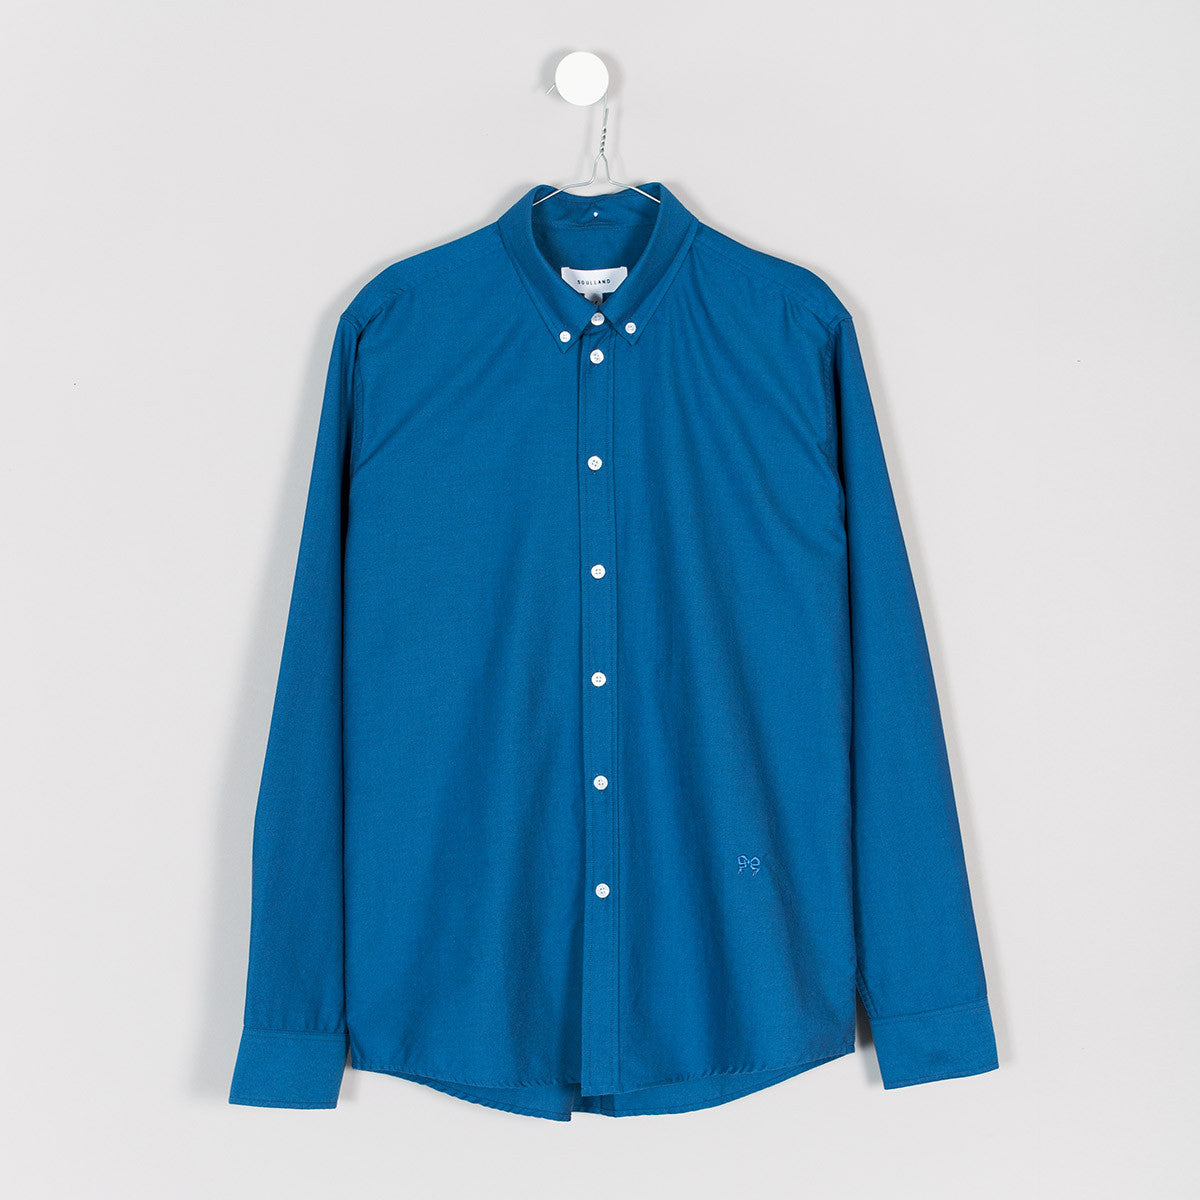 Soulland Goldsmith Oxford Shirt – Indigo Blue  - CARTOCON